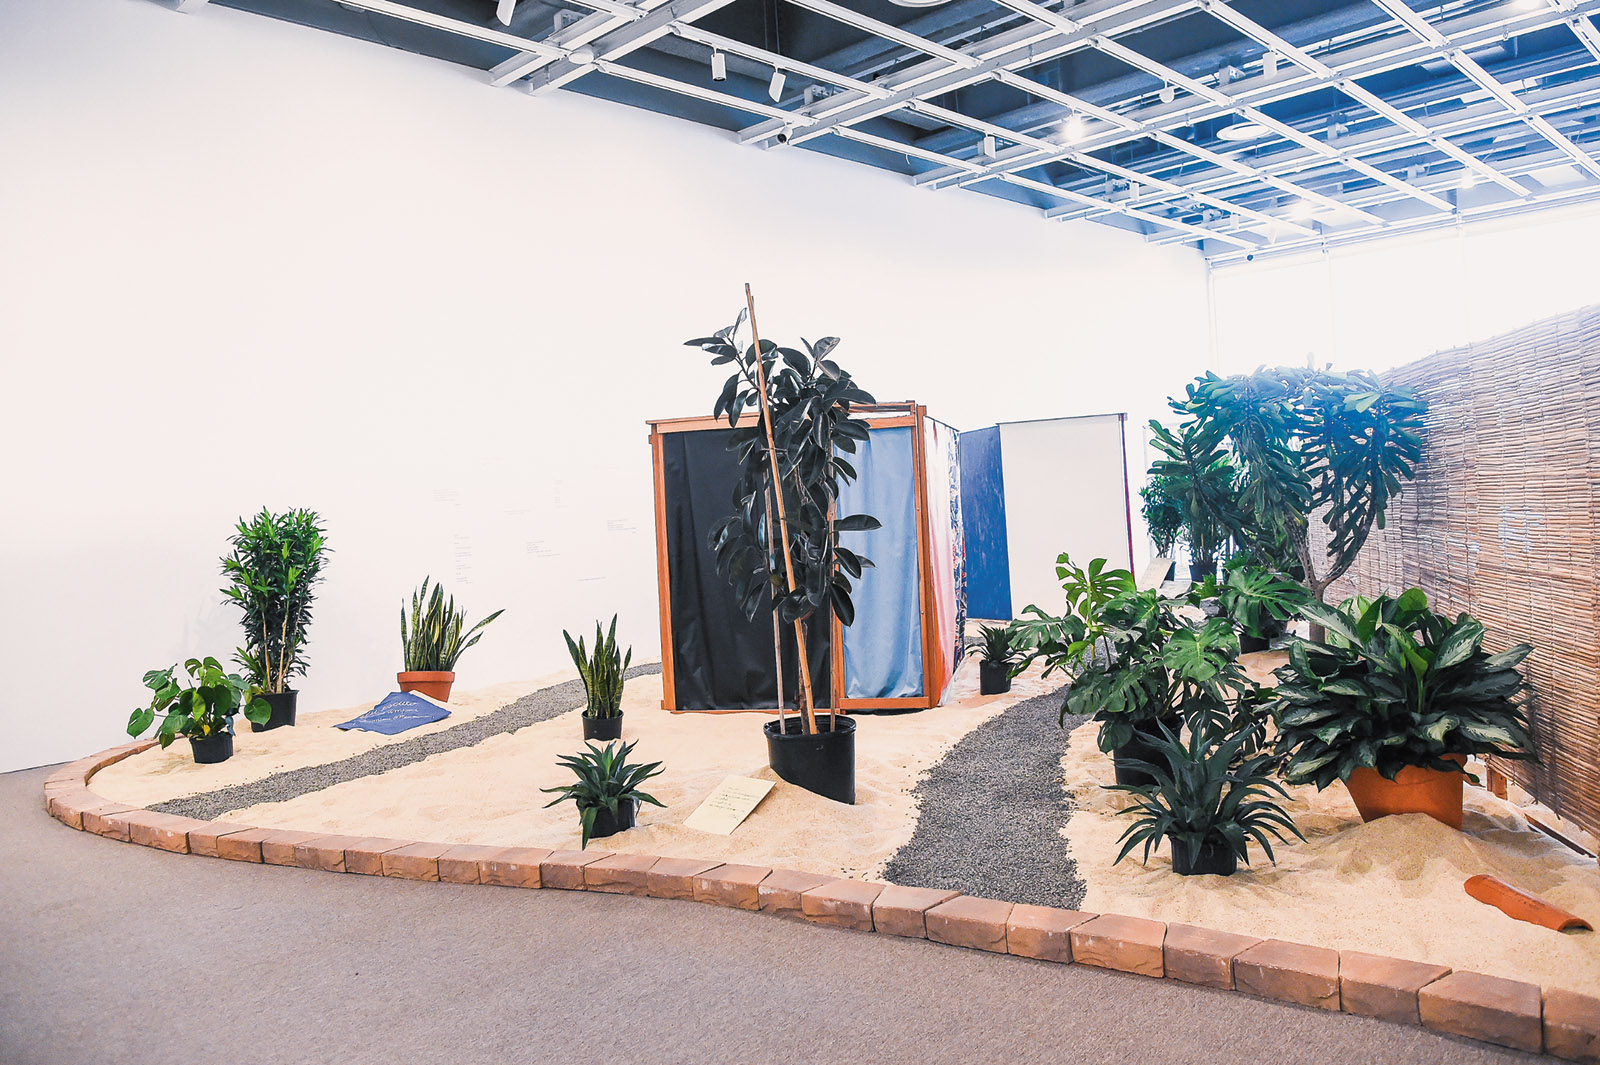 Hélio Oiticica: Tropicália, 1966–1967. The installation, on view at the Whitney, includes plants, sand, birds, and a poem by Roberta Camila Salgado inscribed on brick, tile, and wood.